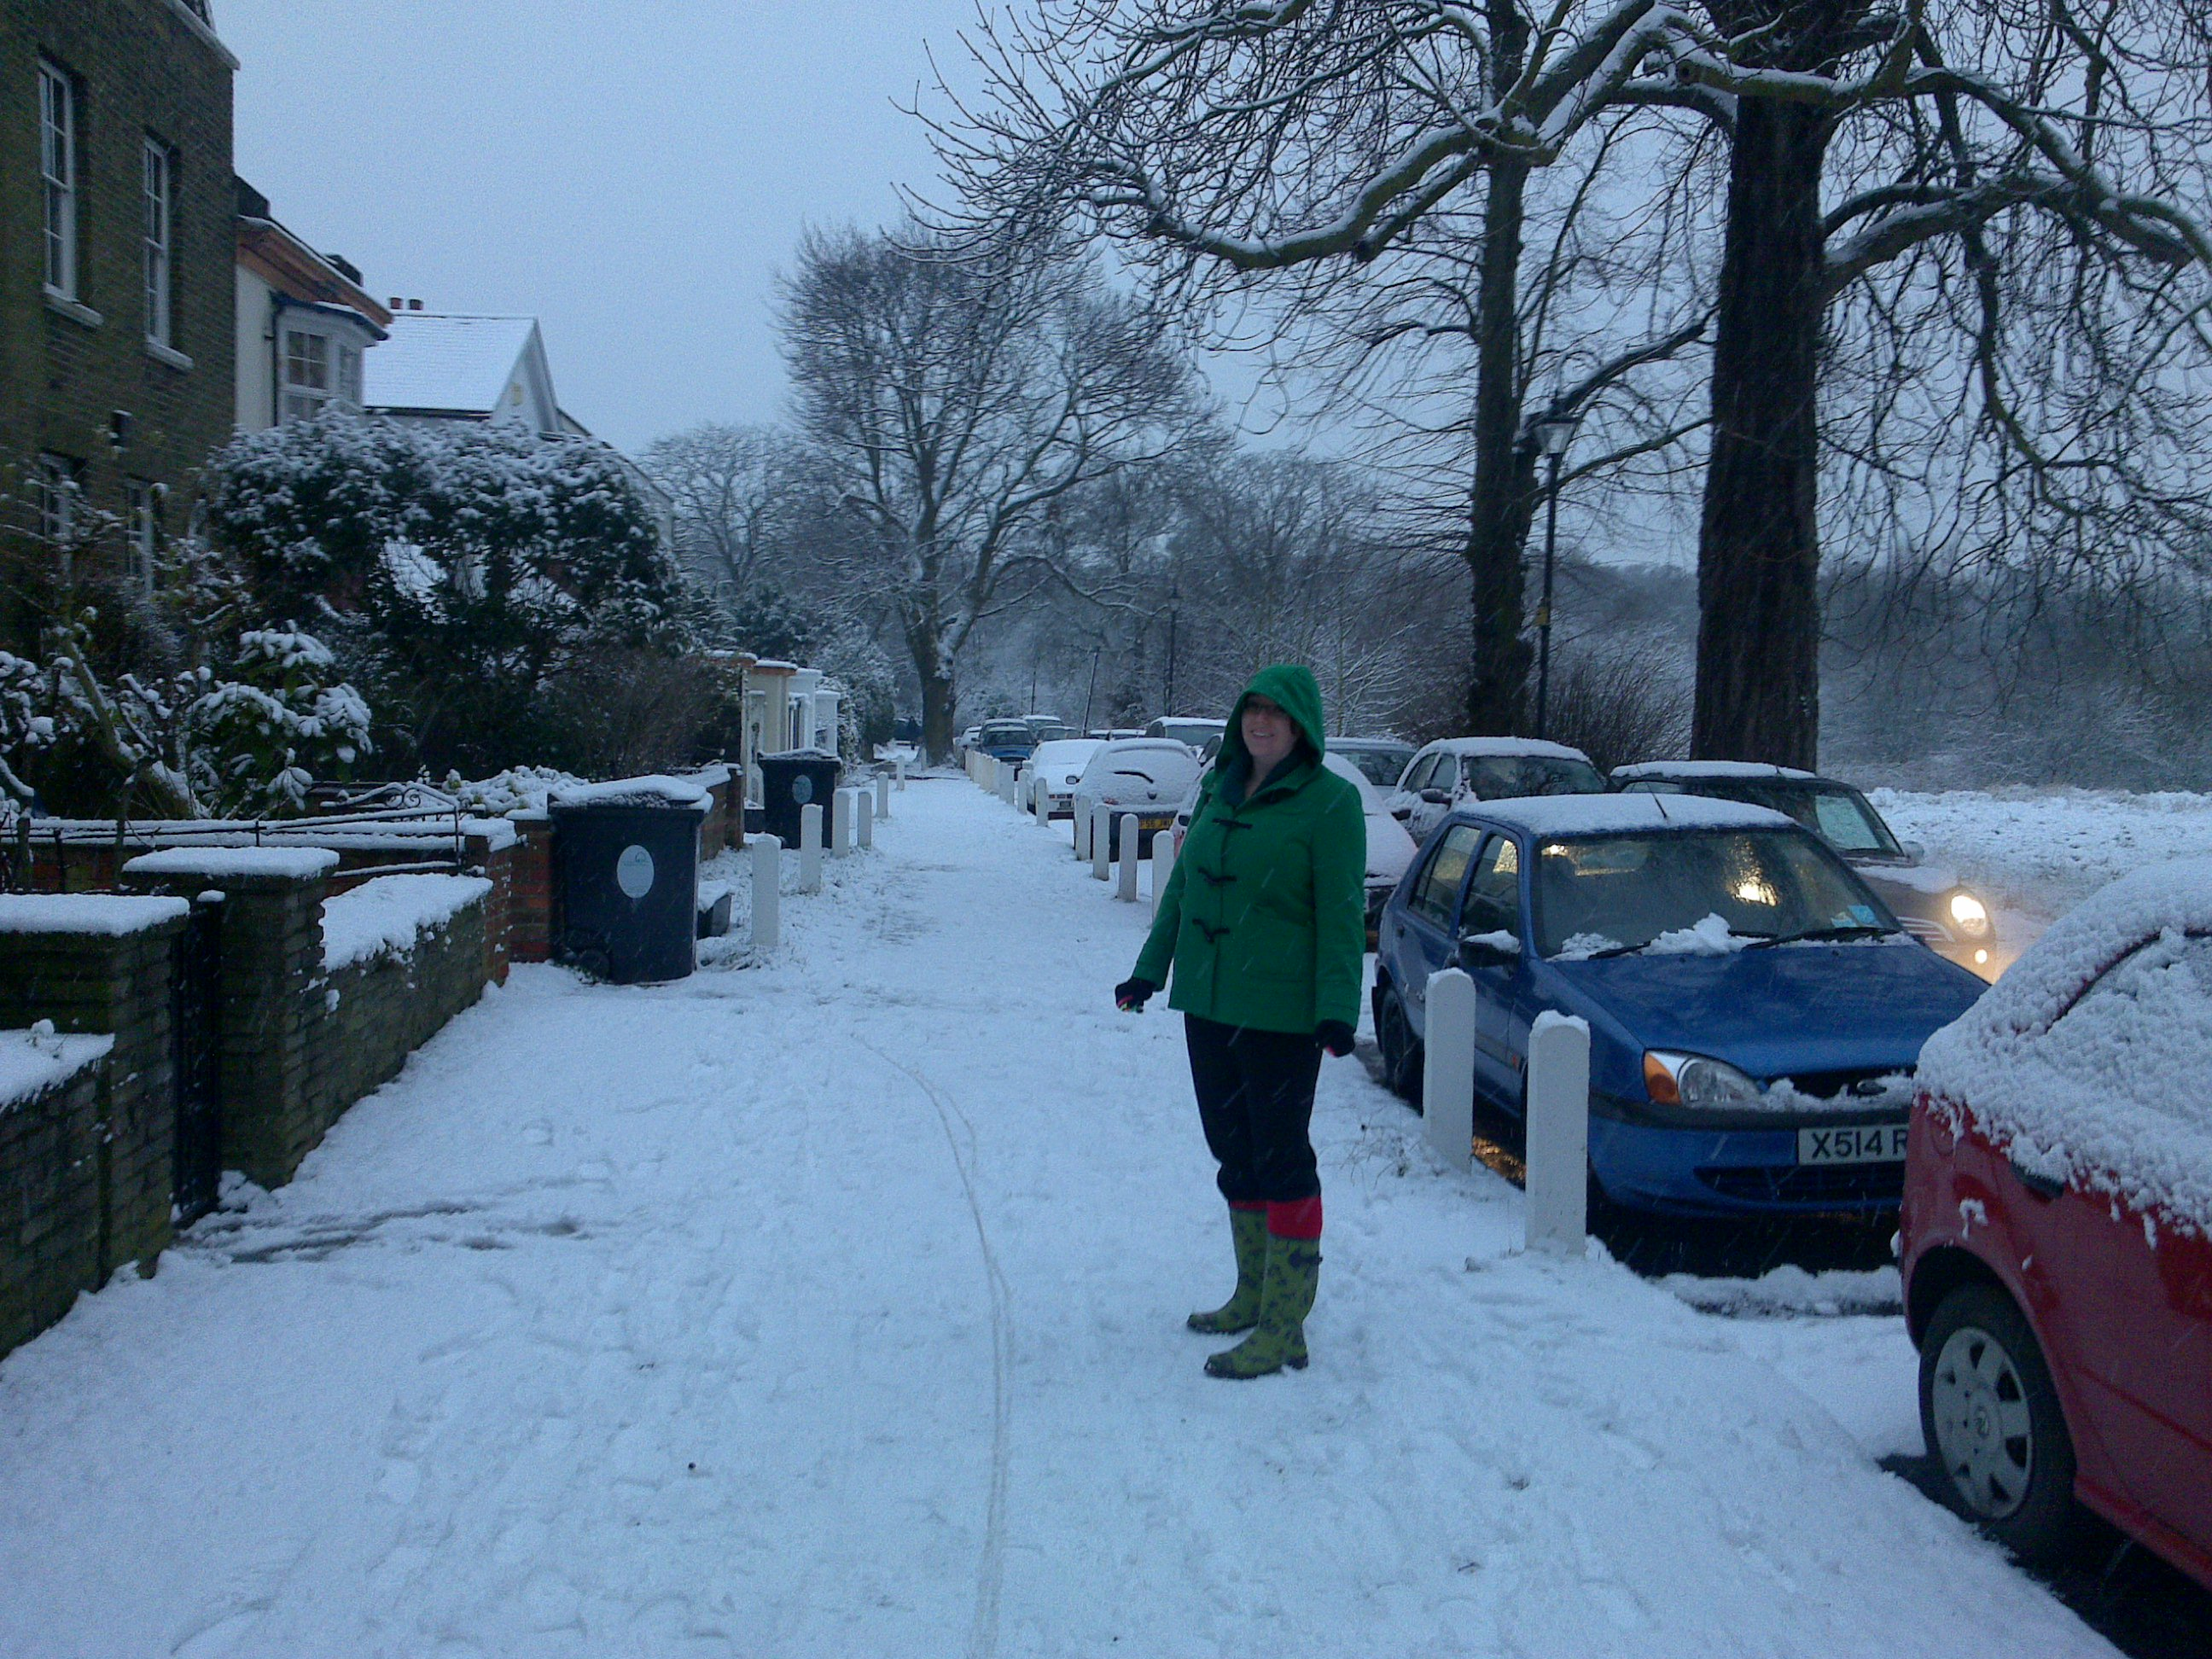 Ruth in the snow